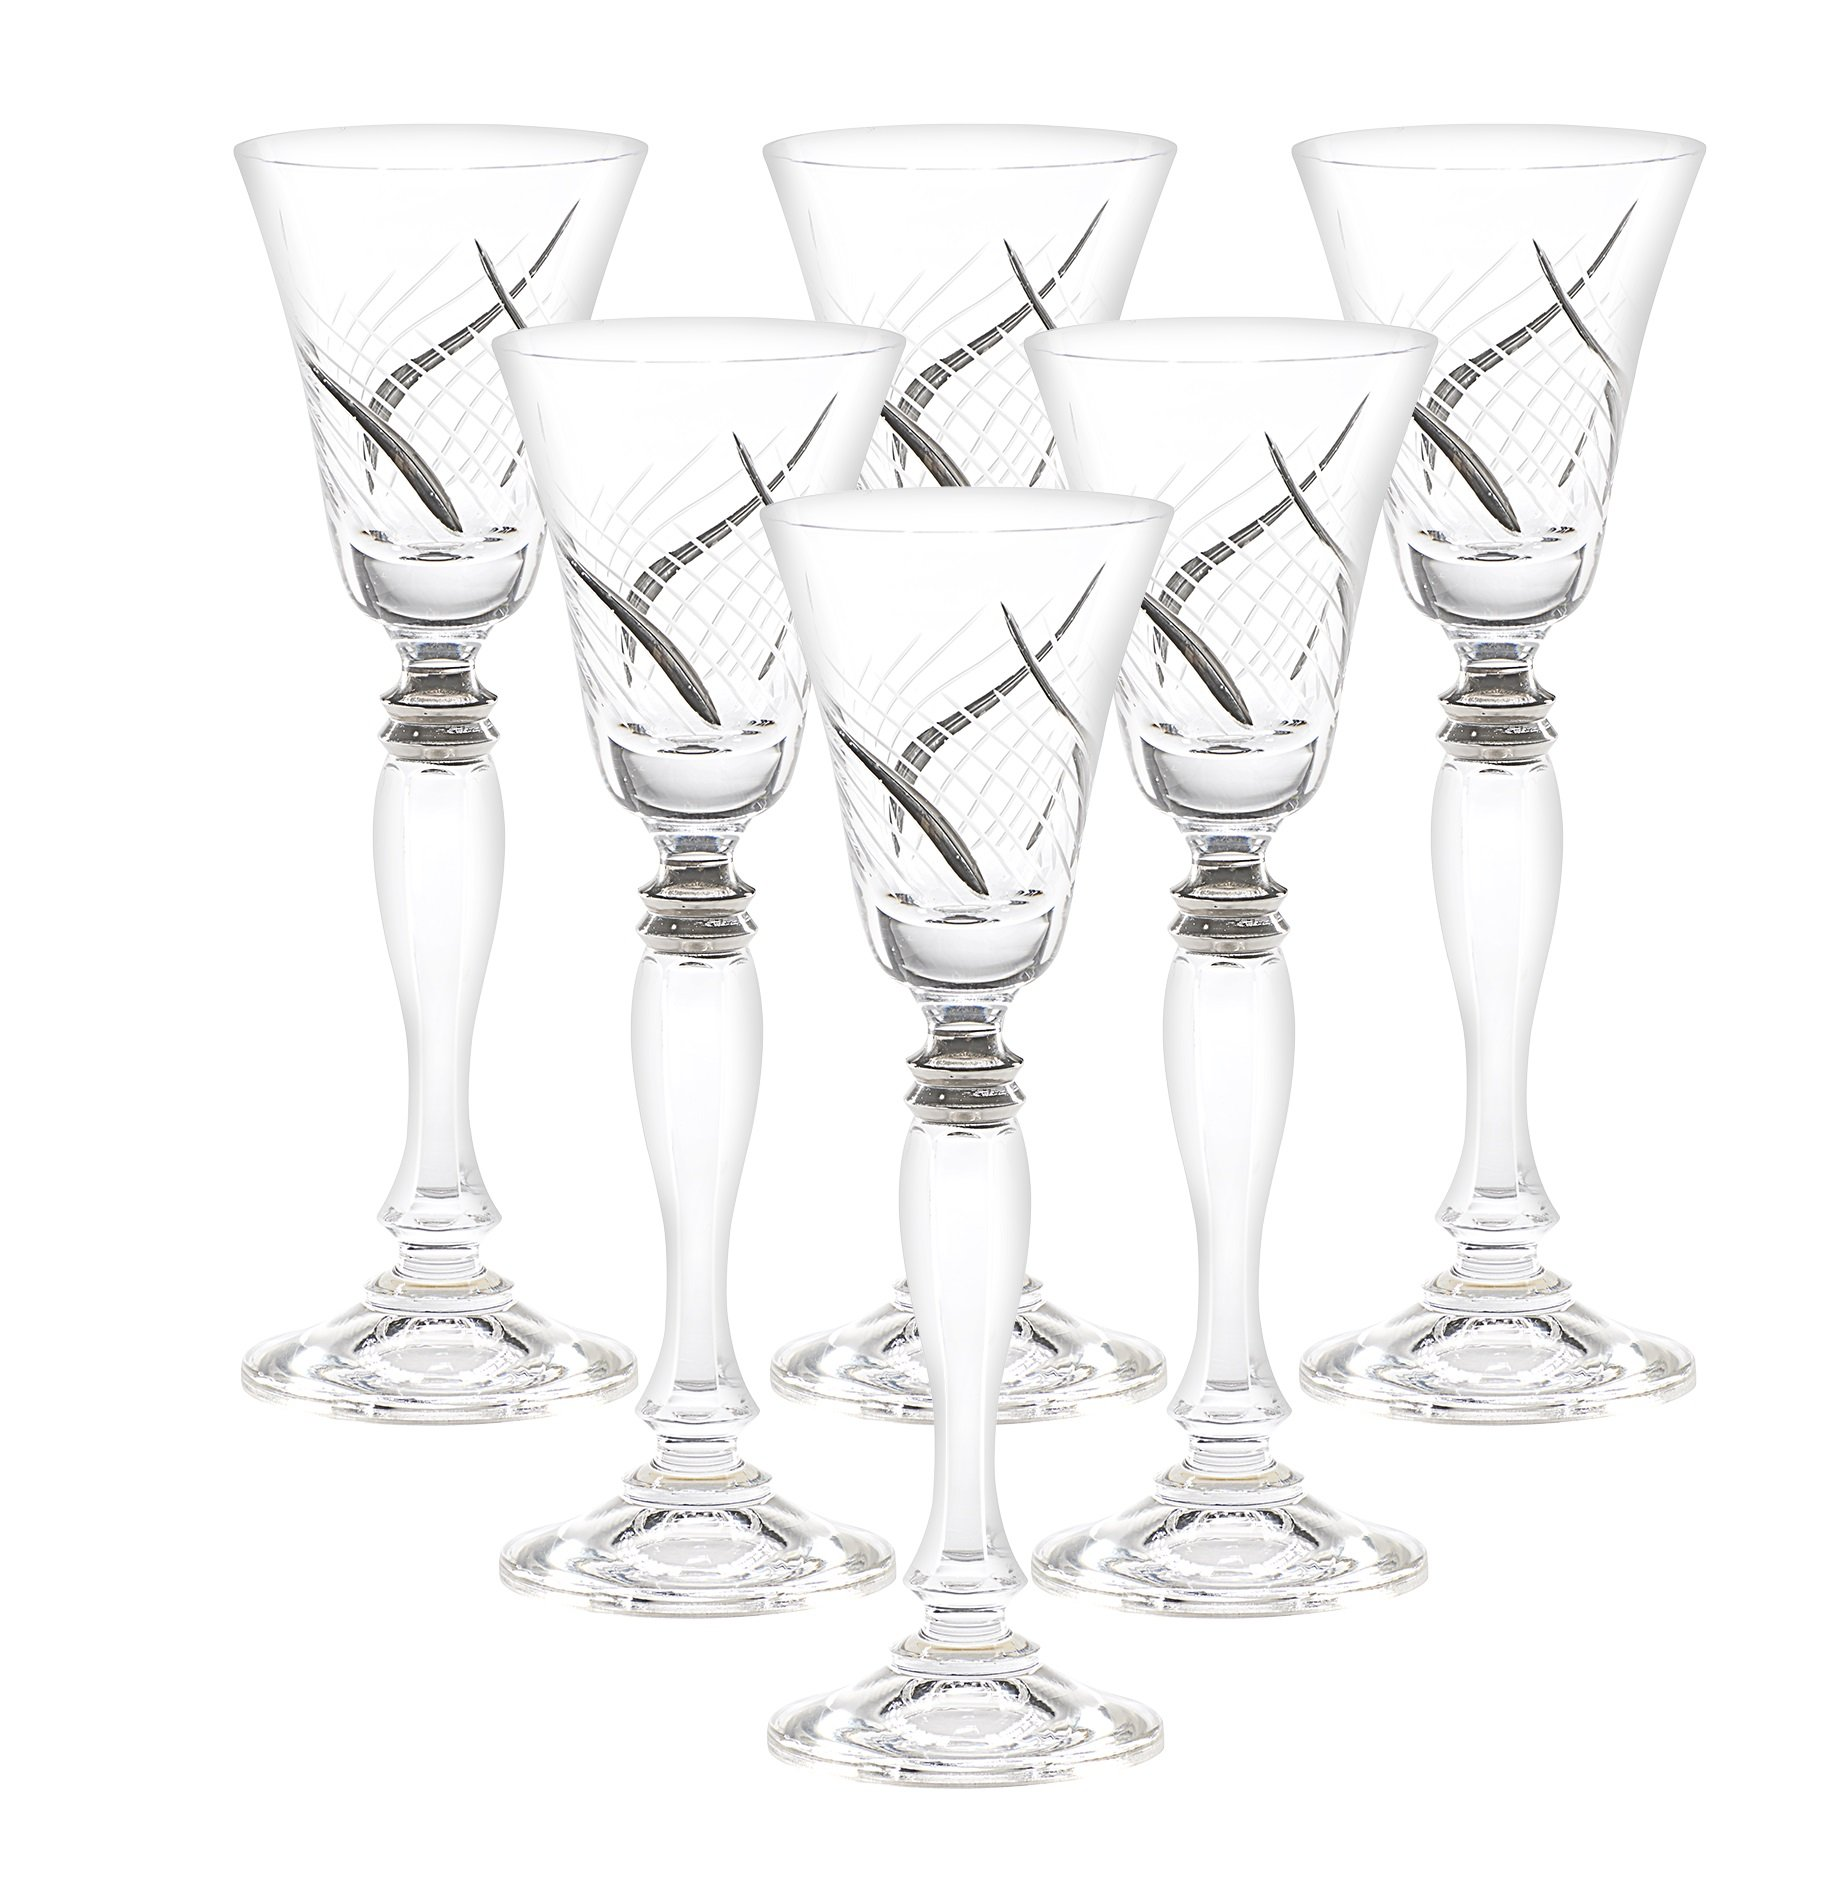 Set of 6 Handcrafted Cordial Liqueur Crystal Glass Drinking Glasses with Real Platinum Detailing, Luxurious Gift for Men and Women - For Scotch, Vodka, Spirits, Liquors & Schnapps, 7'' Height, 2 oz